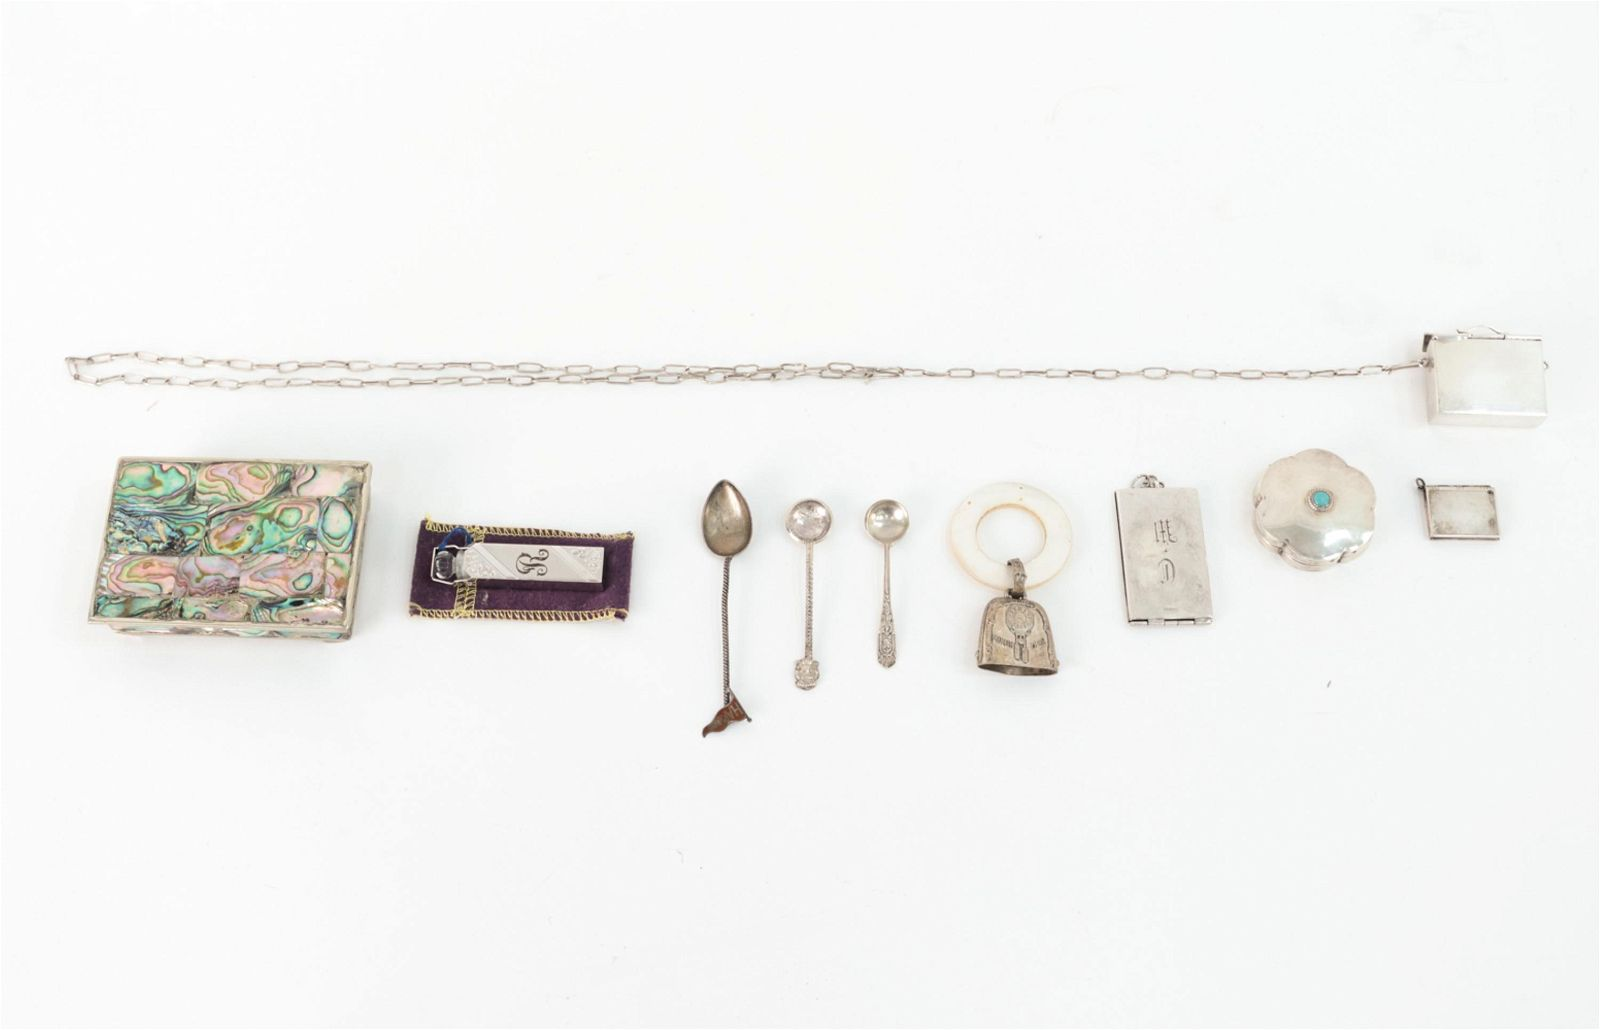 SILVER GROUPING INCL BOXES & PERFUME